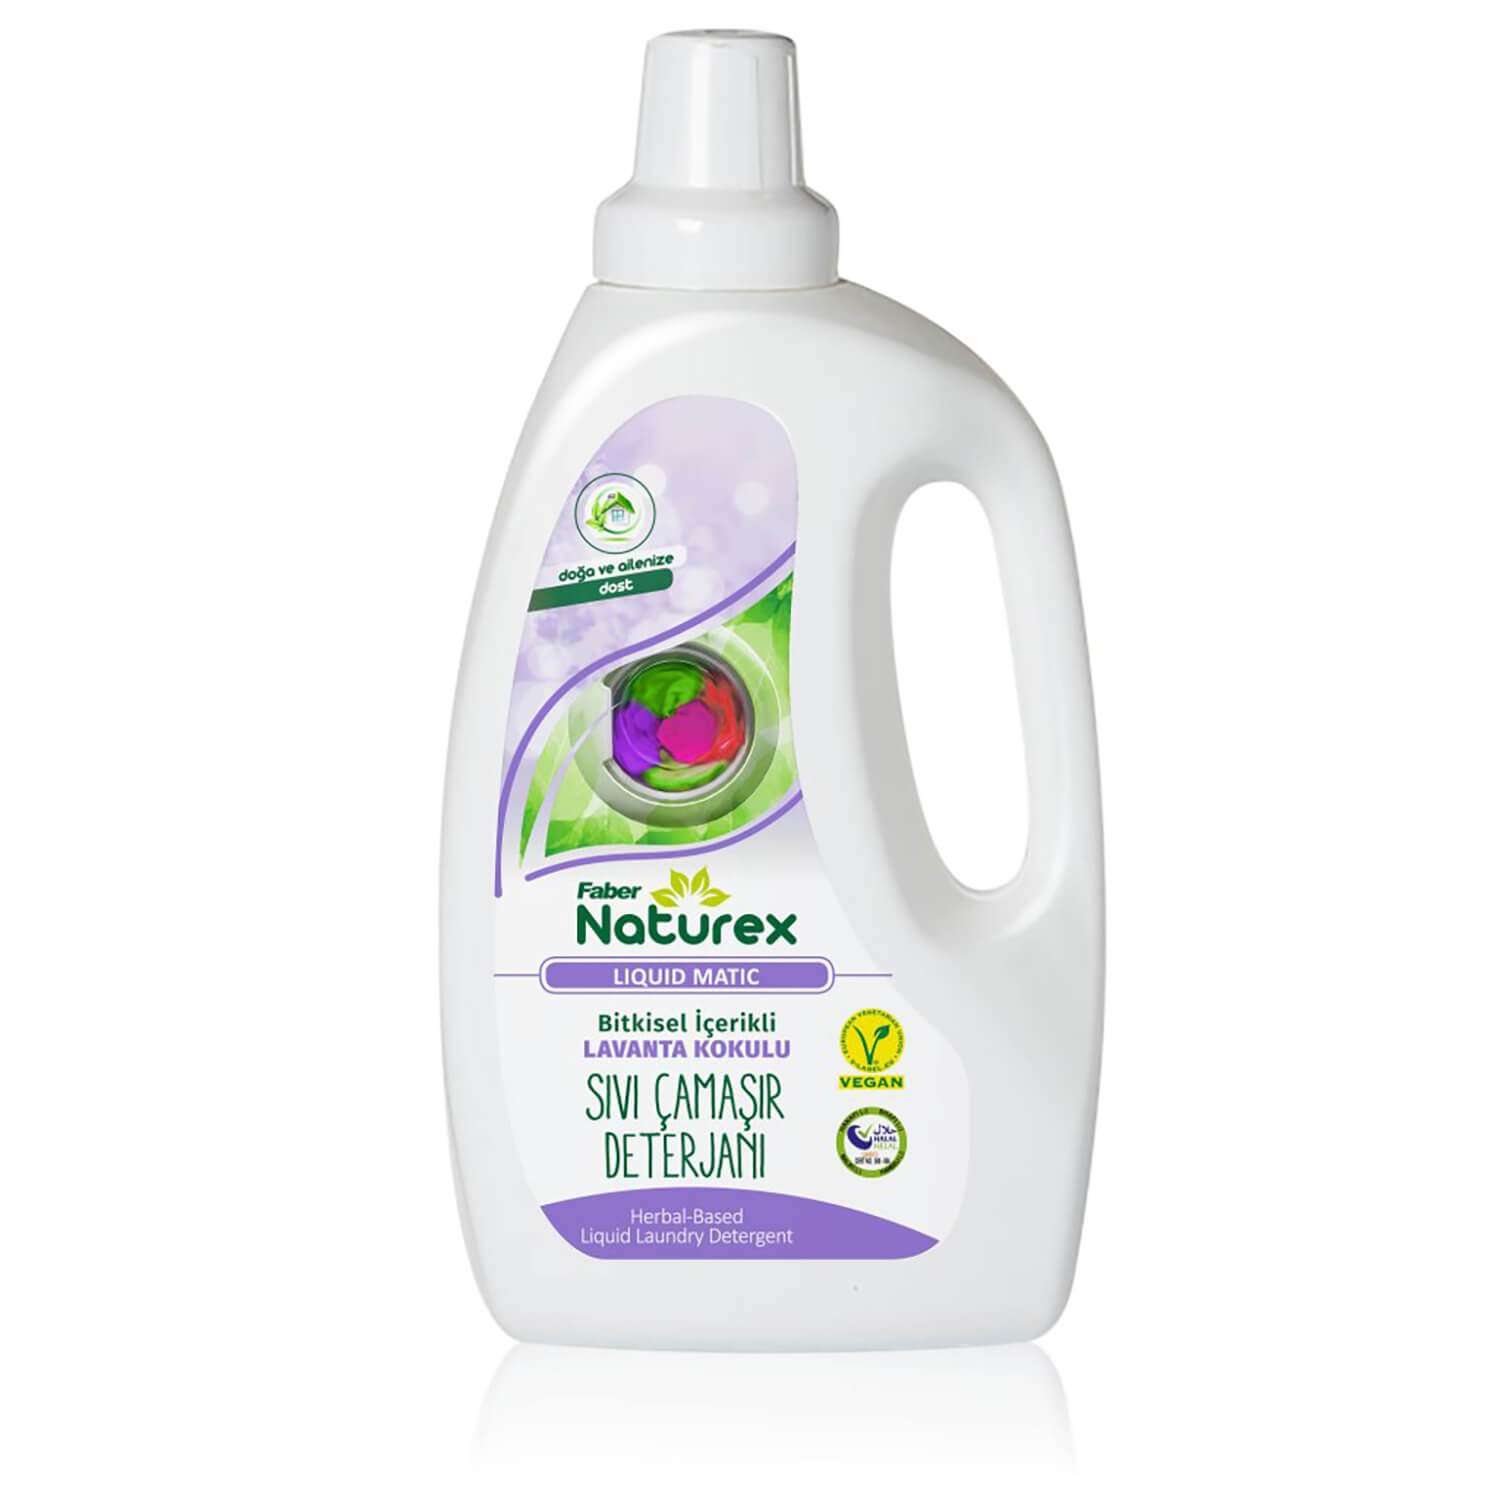 Faber Naturex® Liquid Matic